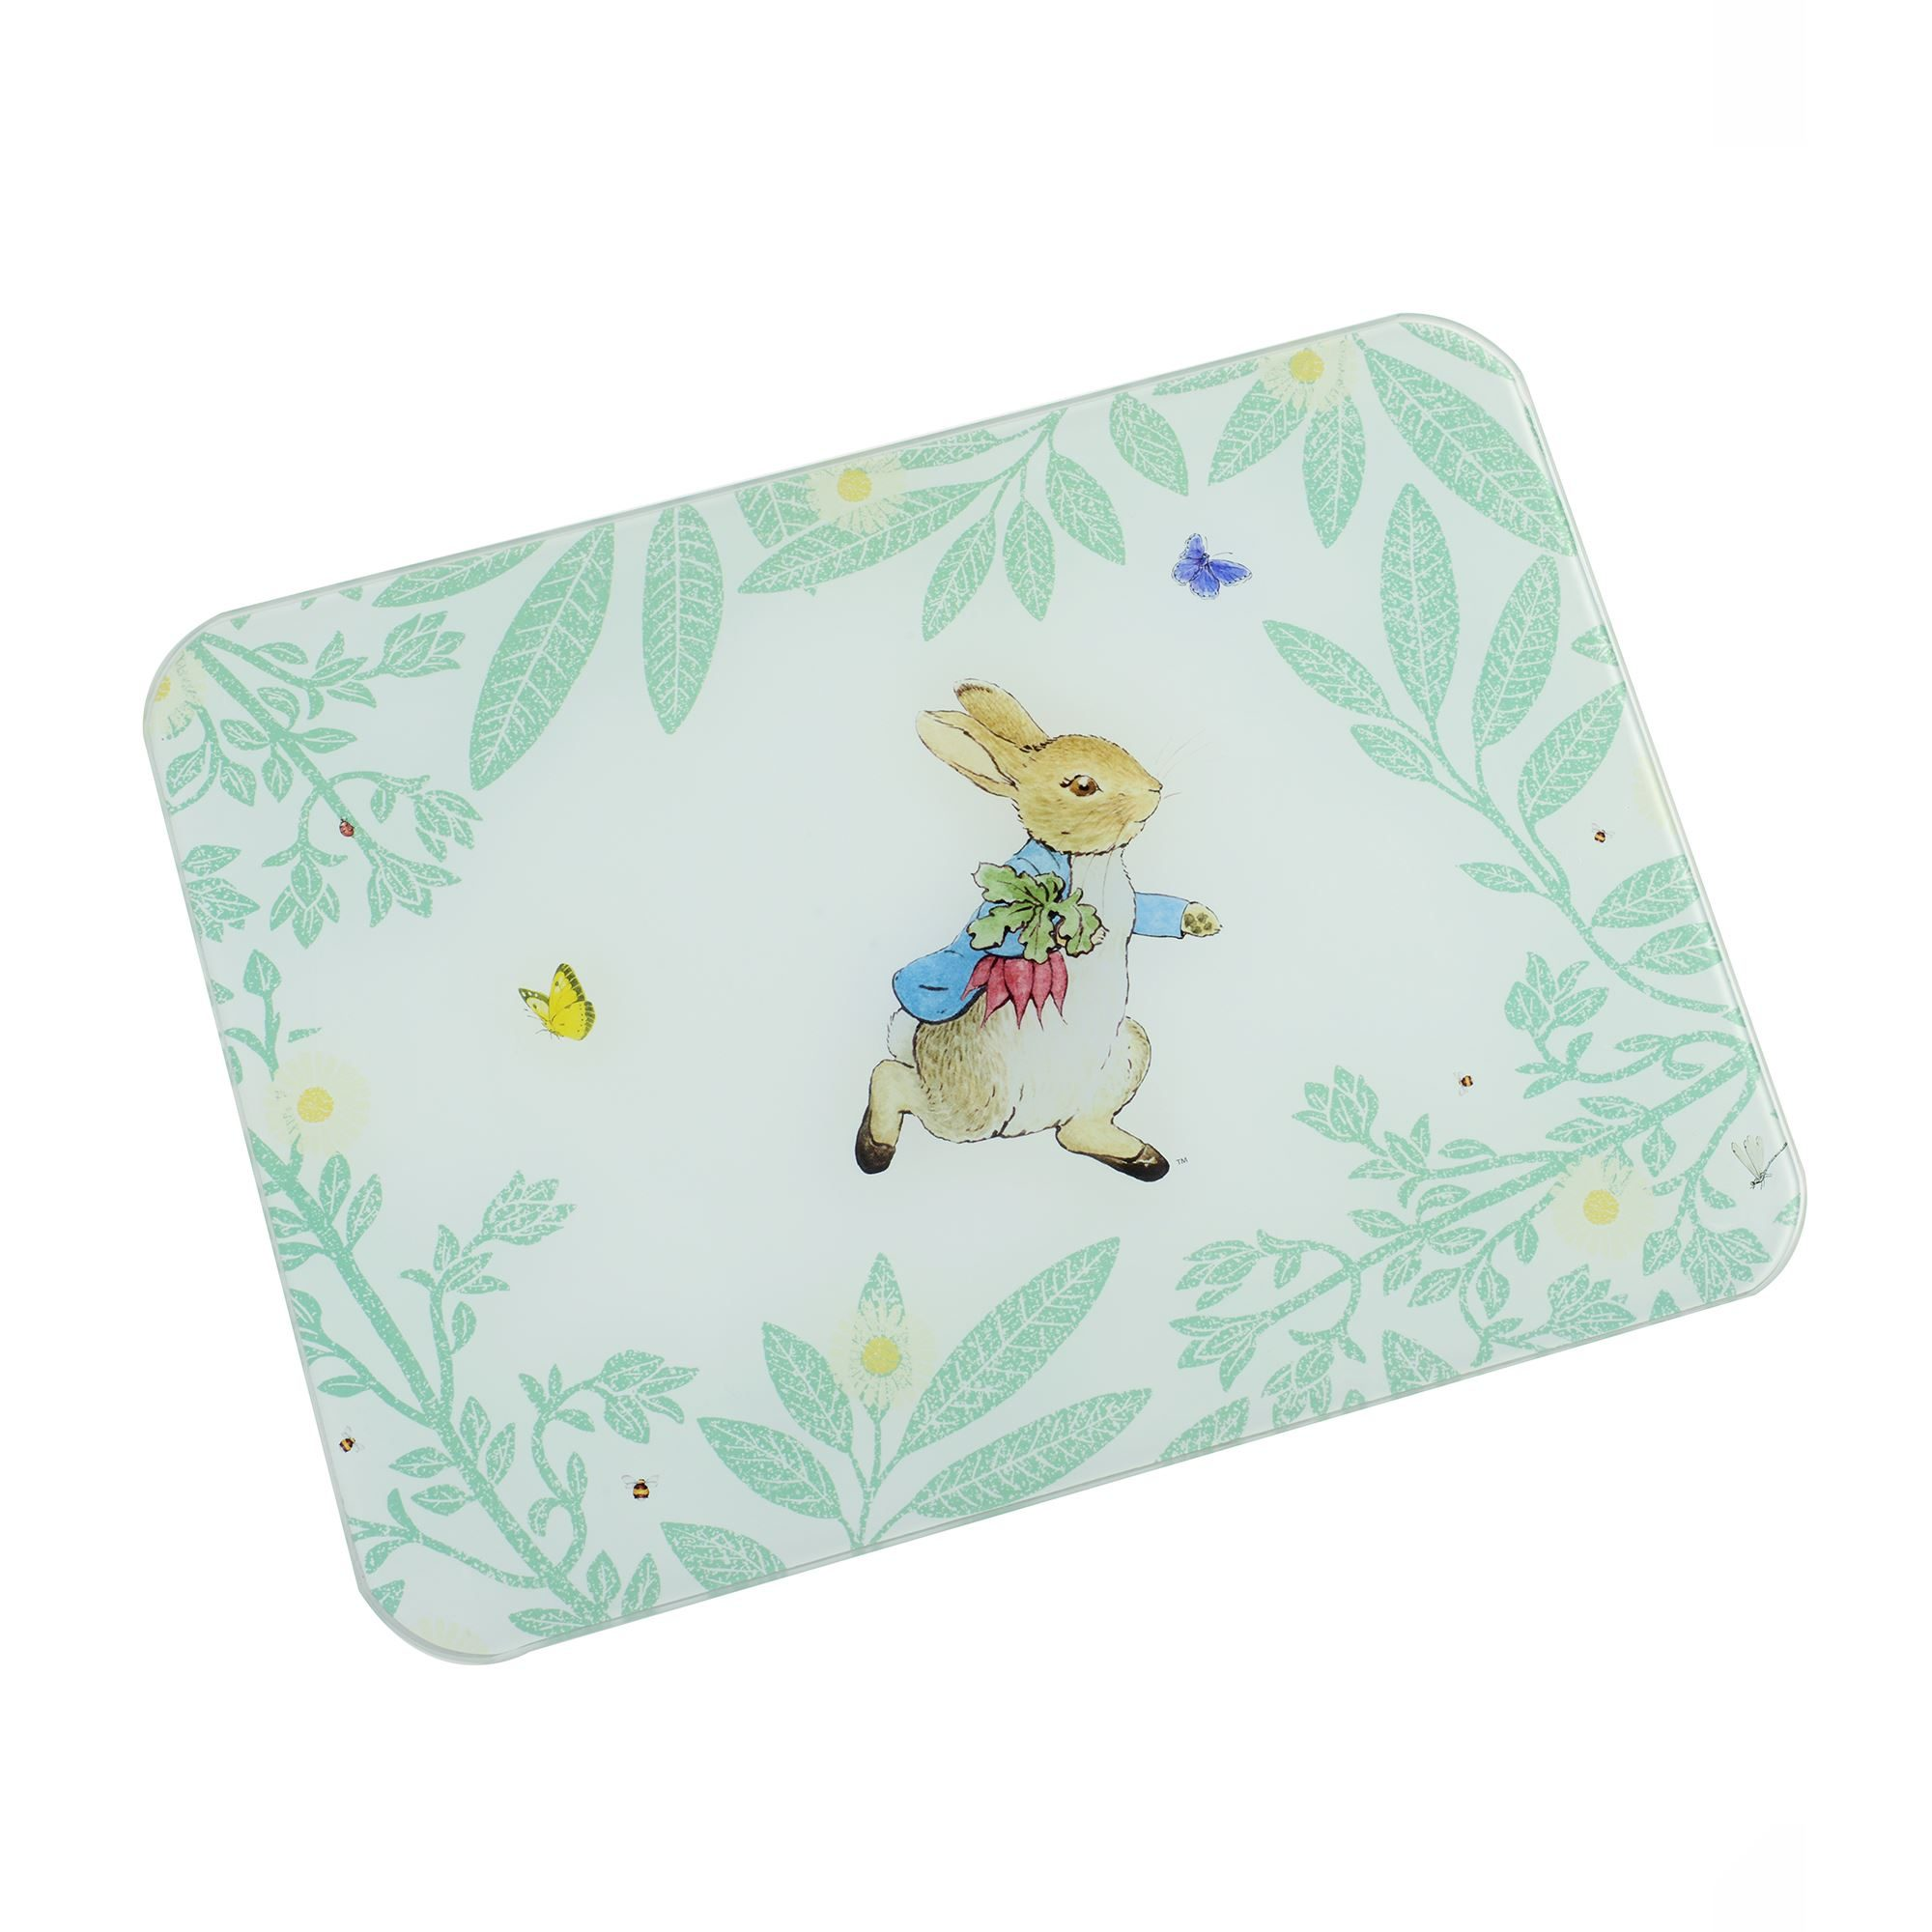 PETER RABBIT  GLASS BOARD